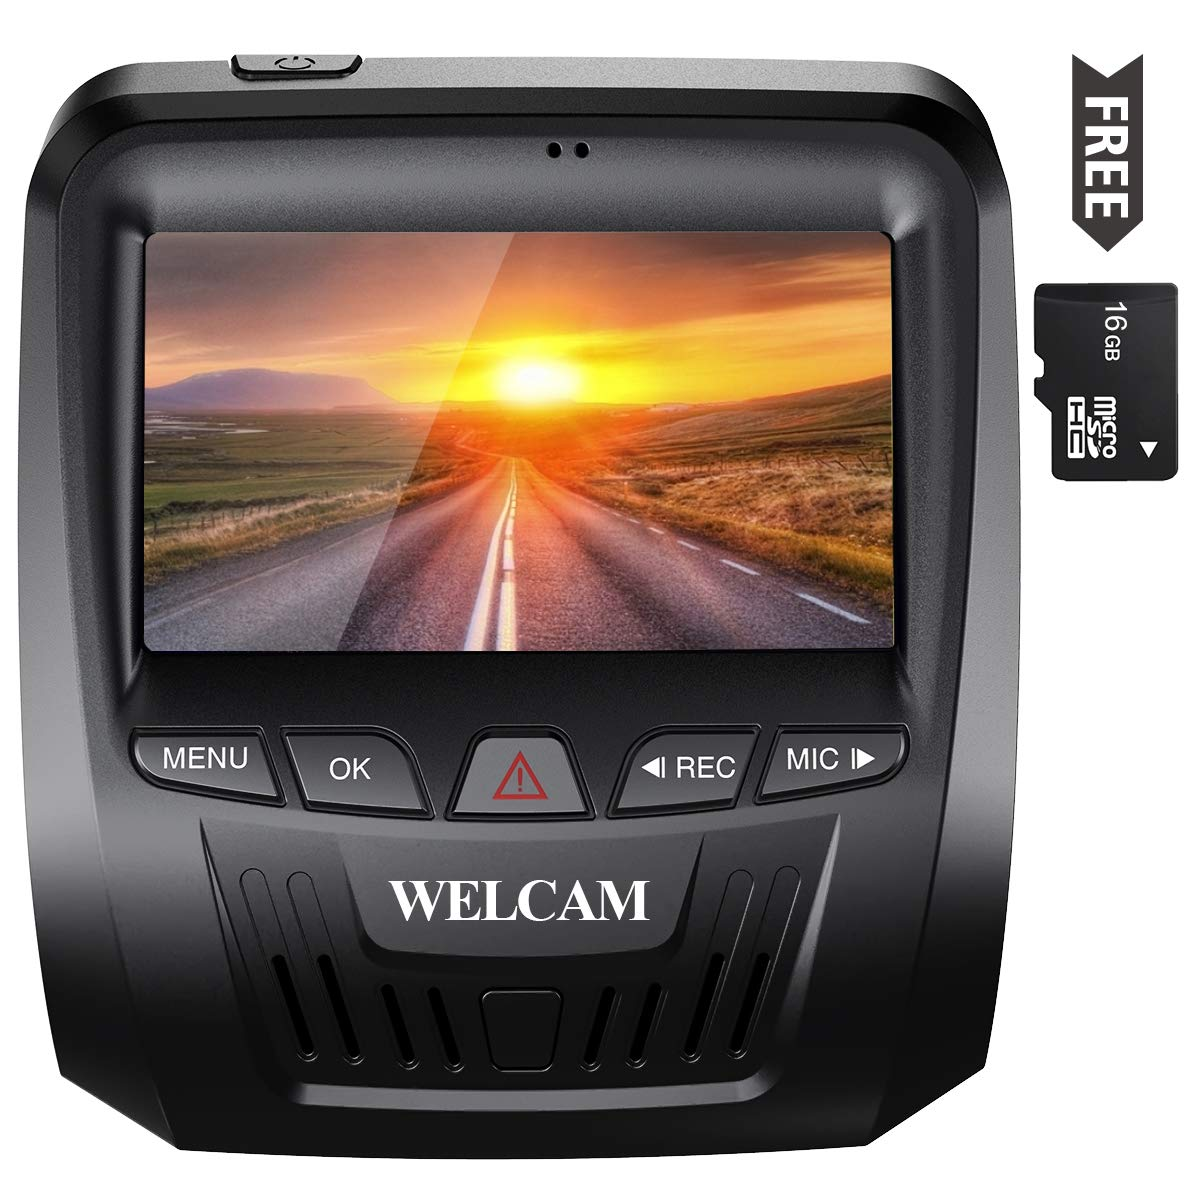 WELCAM Smart Car Dash Camera with Free miniSD Card, 3'' 1080 FHD Display, Clear Night Vision with Sony Image Sensor, Loop Recording, Parking Monitoring and Motion Detection, Collision Video Lock, WDR